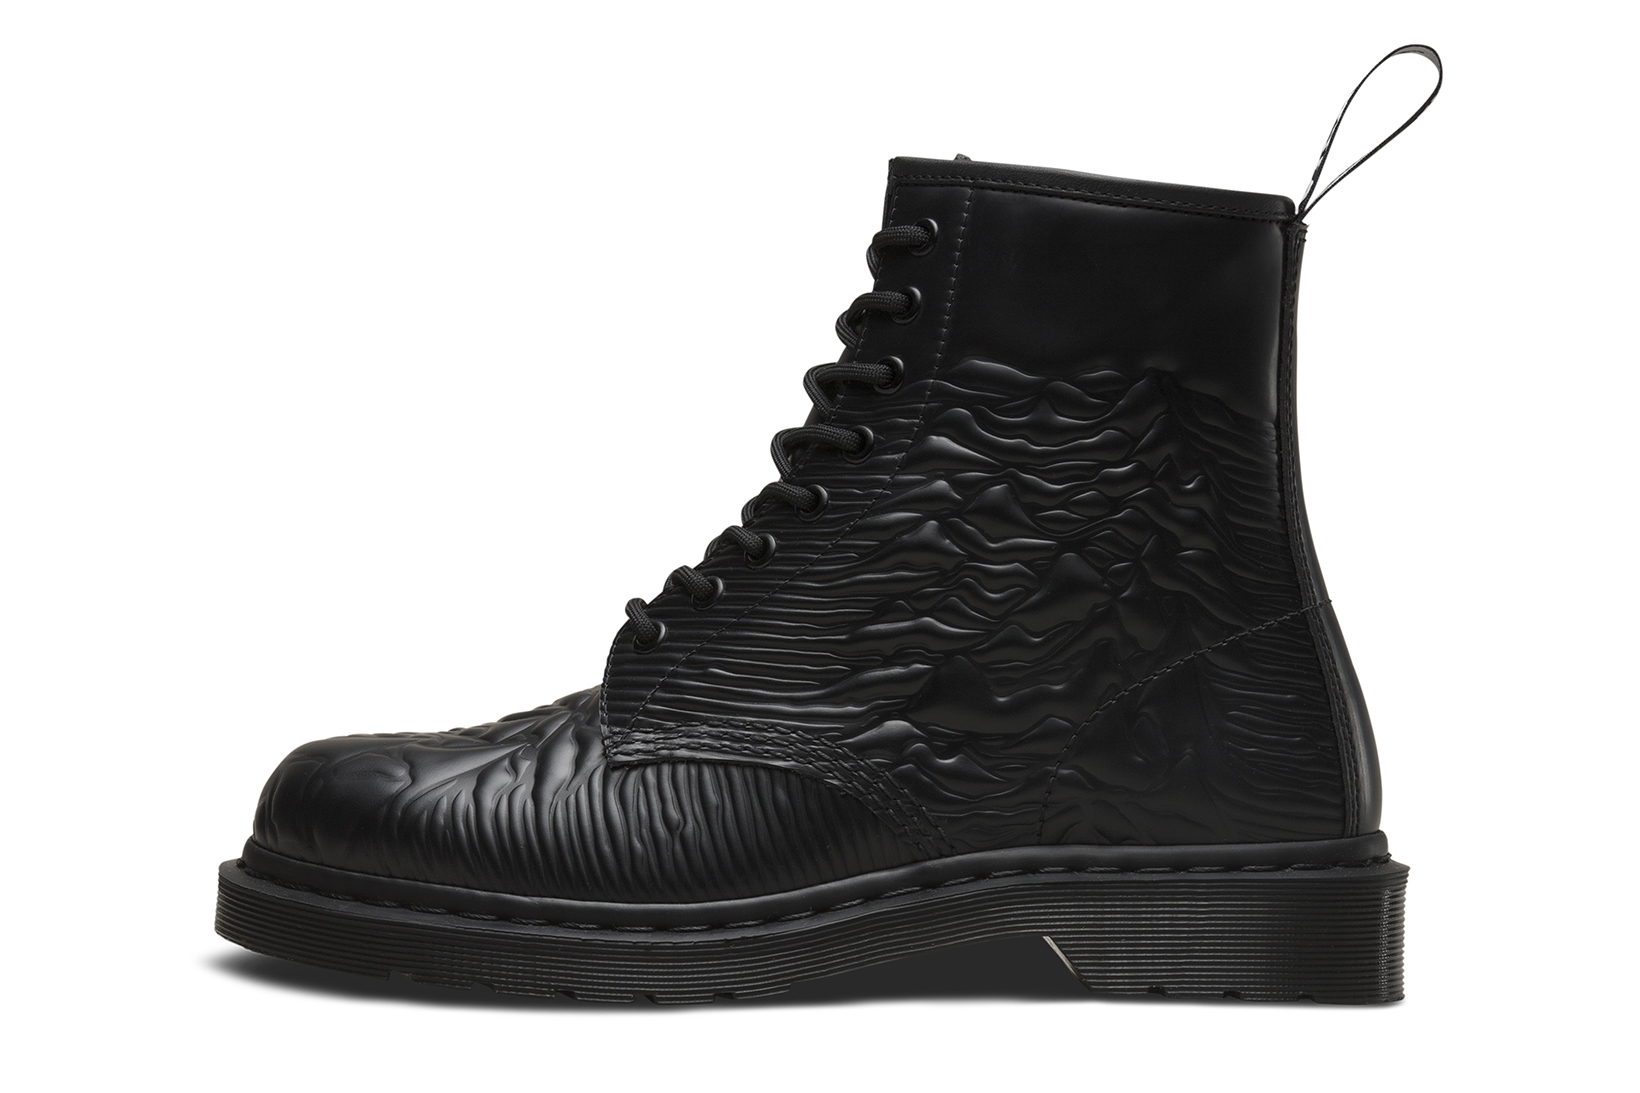 Dr. Martens x Peter Saville/Joy Division/New Order 1460 8-Eye Boot